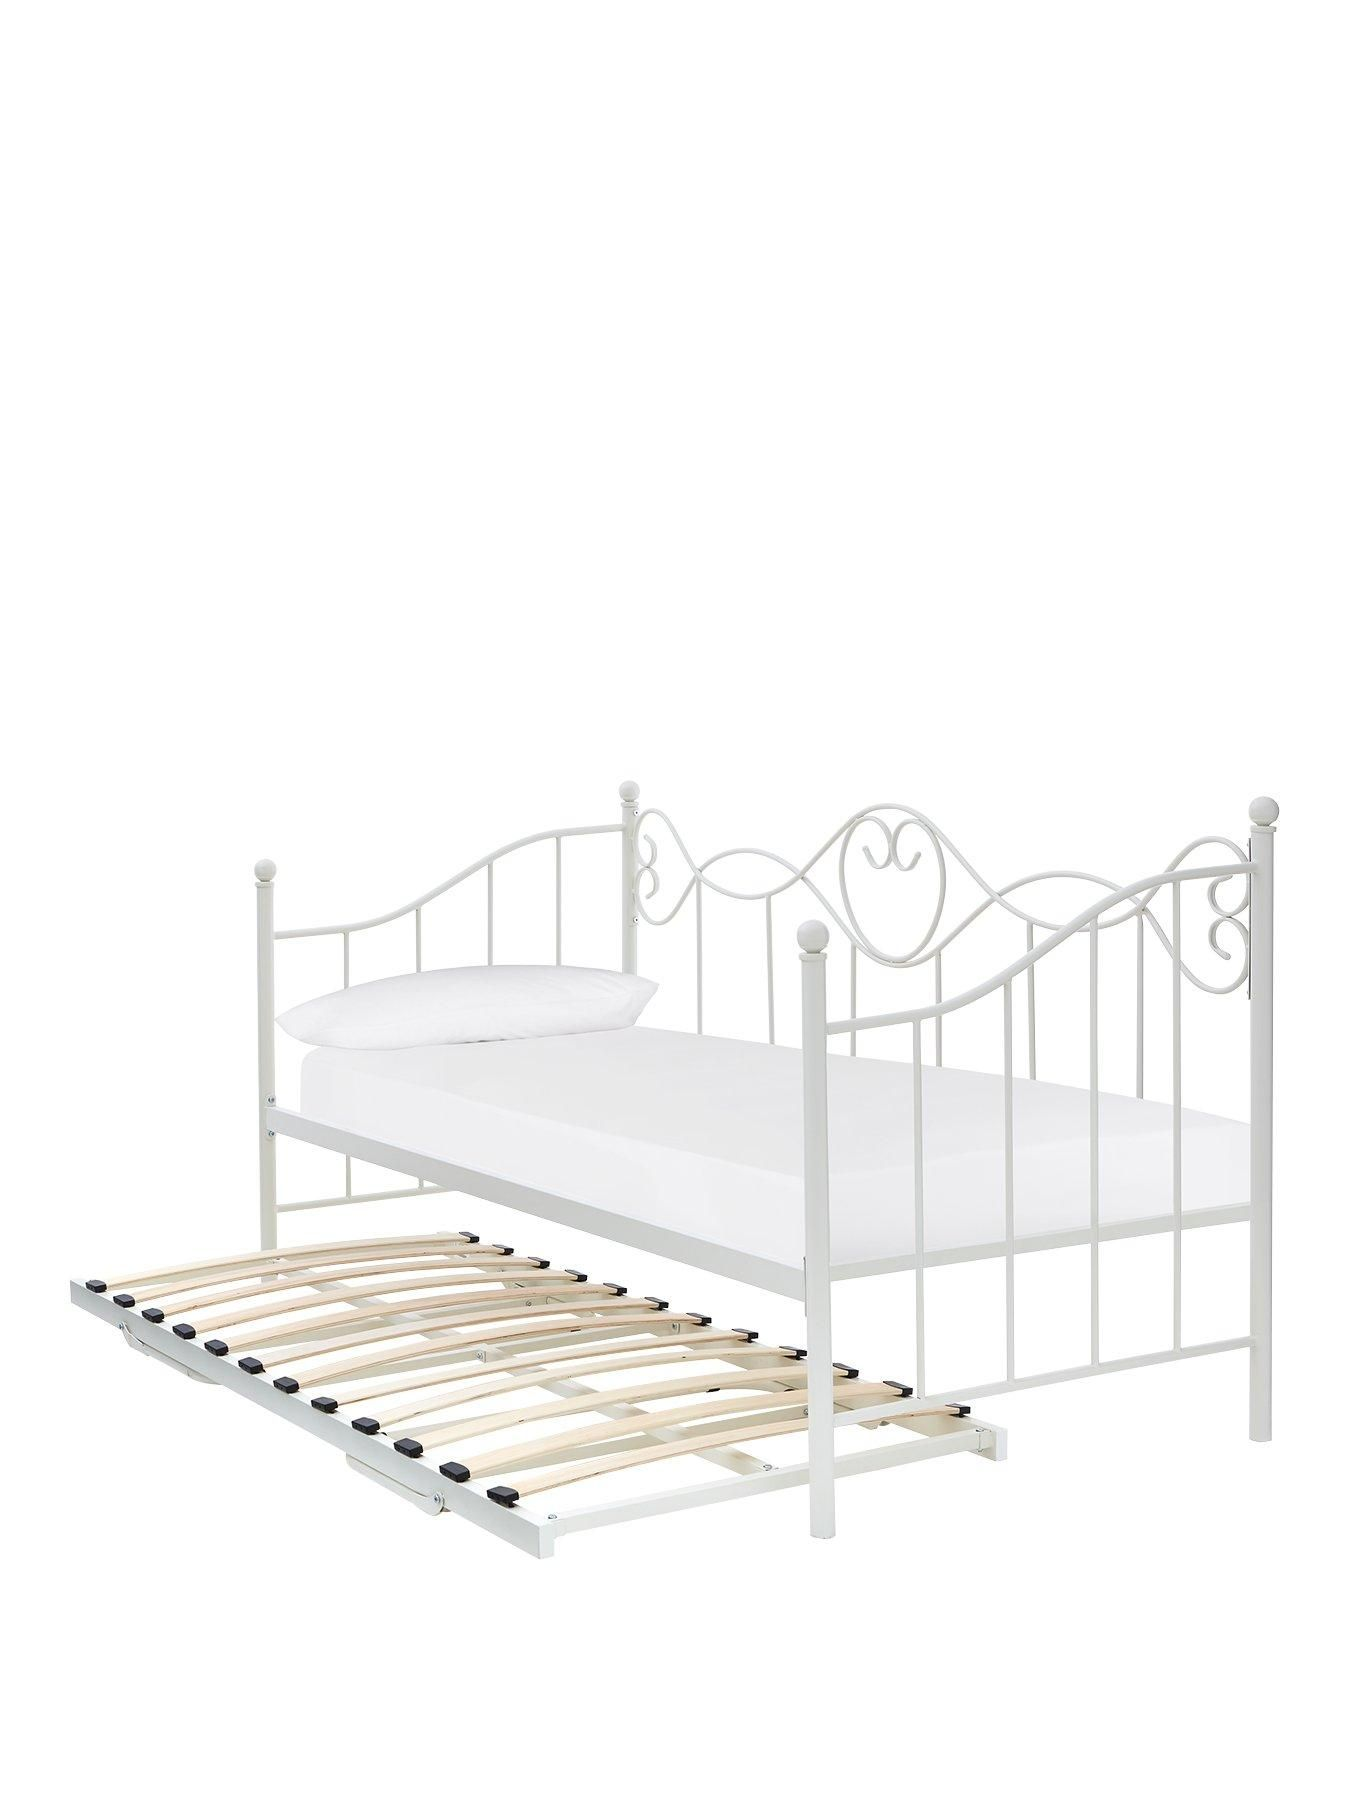 Juliette Metal Day Bed And Trundle Bed With Mattress Options Buy